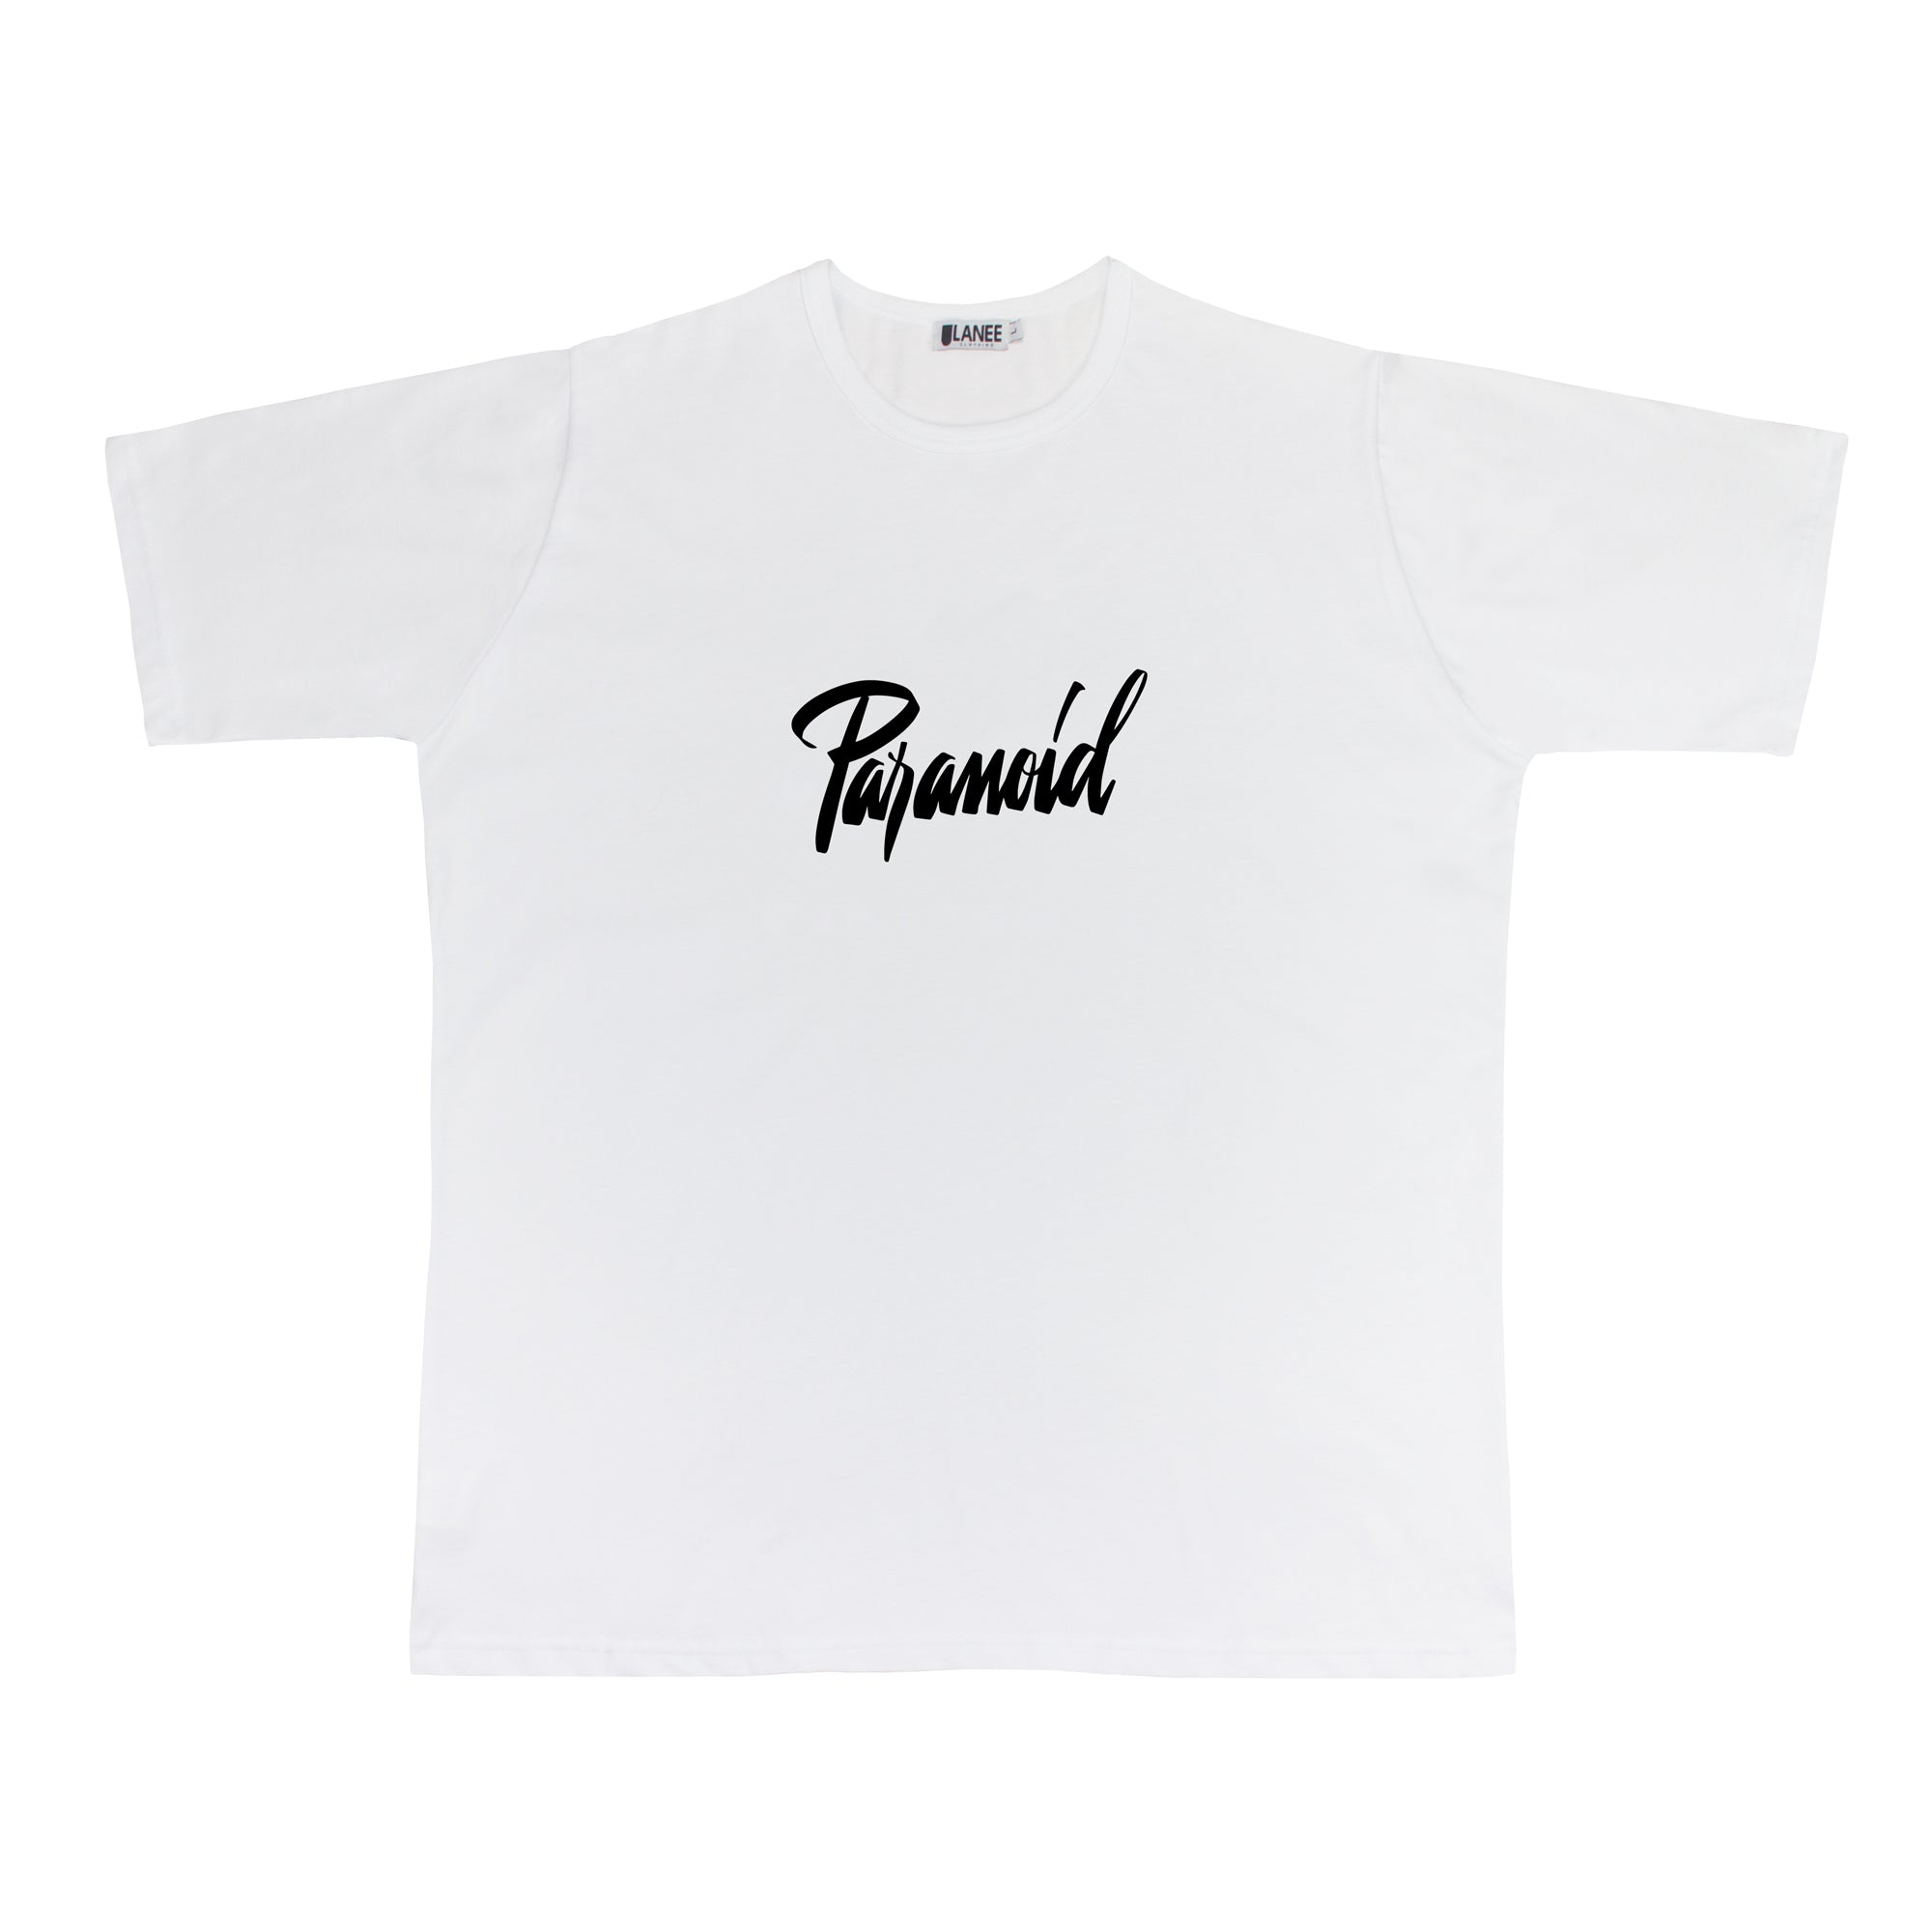 56ef250aa0c3 PARANOID WHITE/BLACK TEE - Lanee Clothing - Streetwear made in Greece